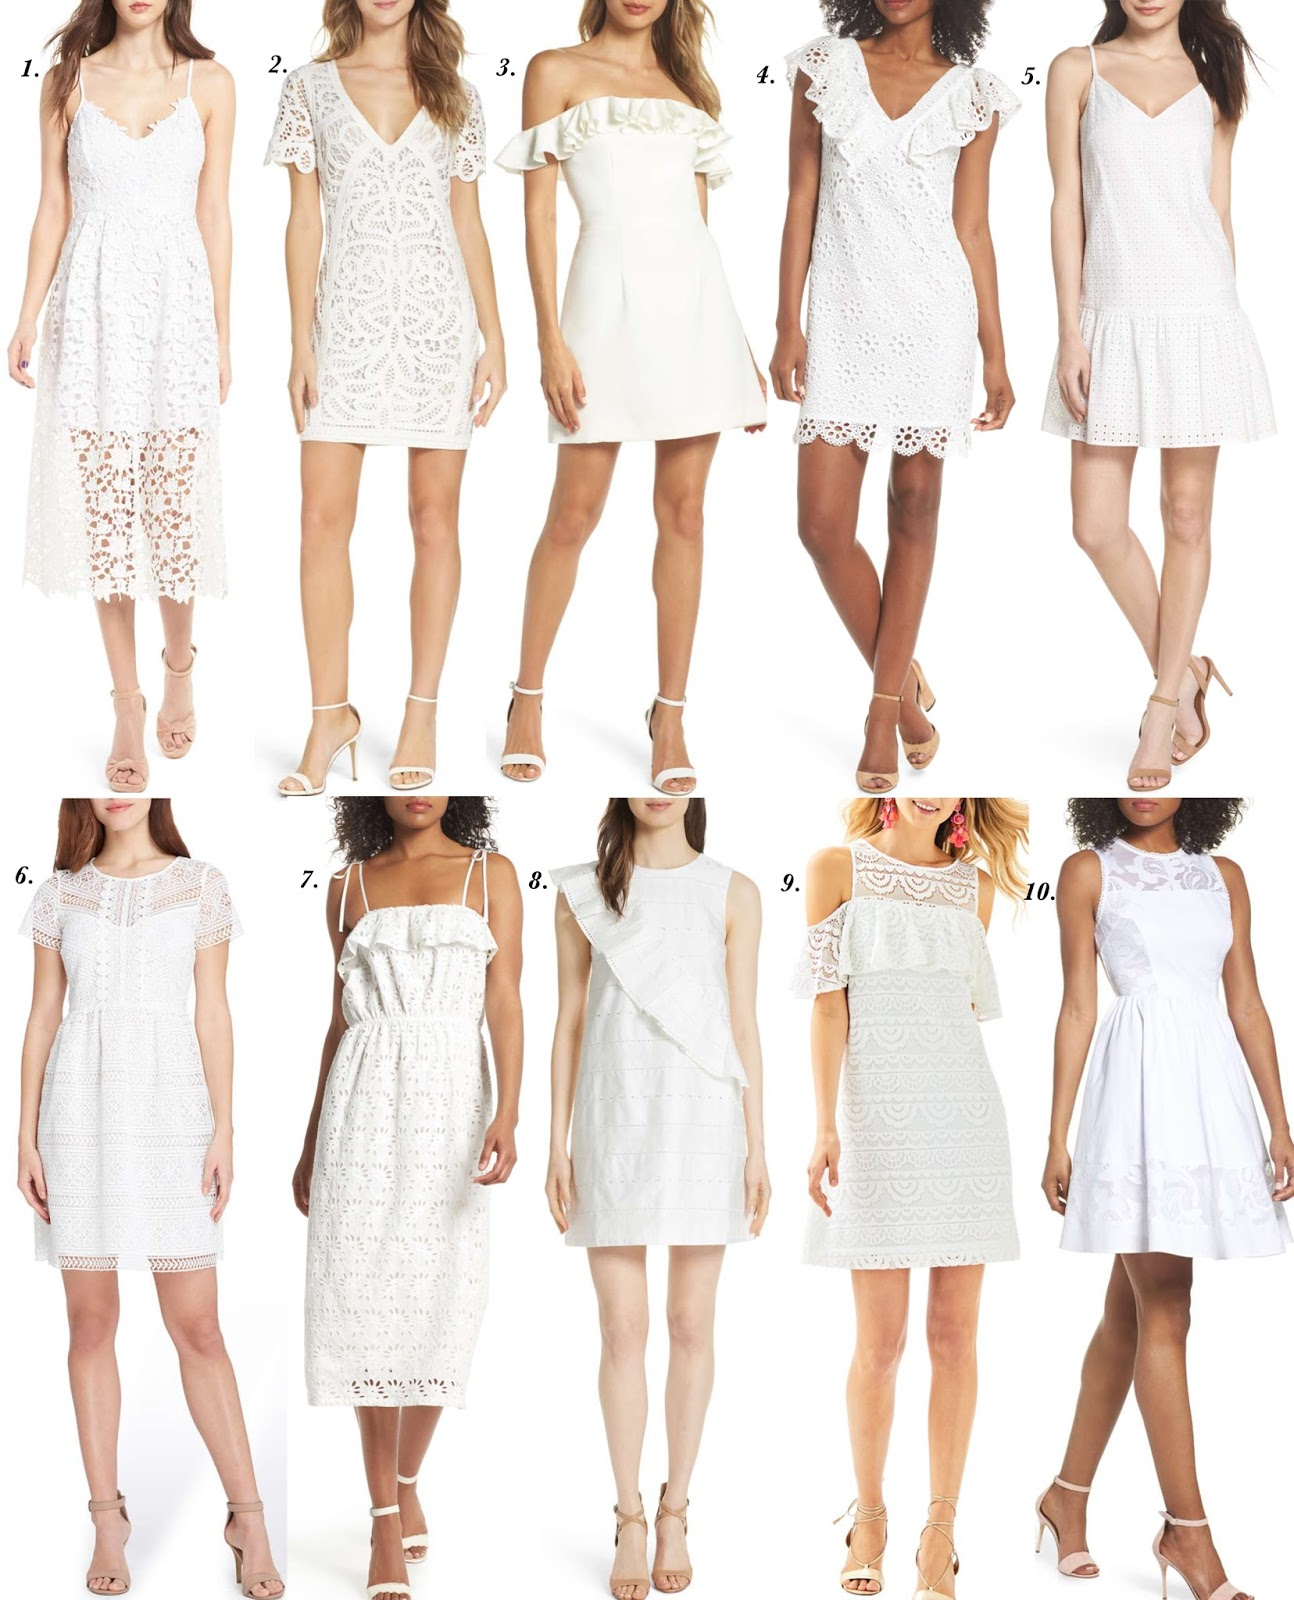 Twenty Amazing White Dresses - Something Delightful Blog